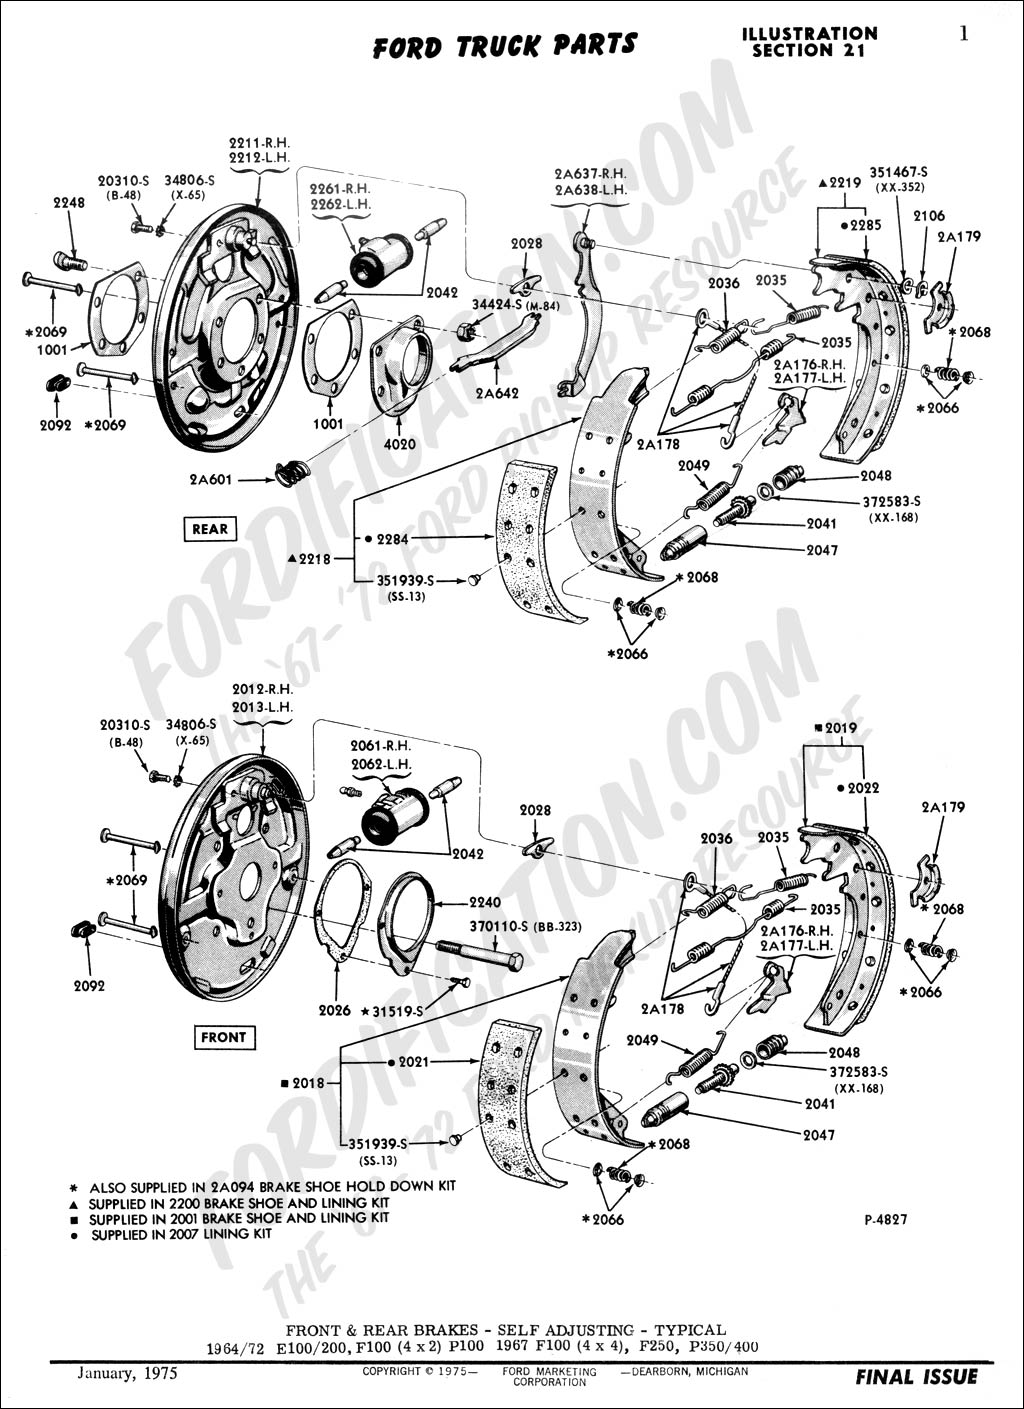 Schematics_b on 2007 Ford Escape Parts List